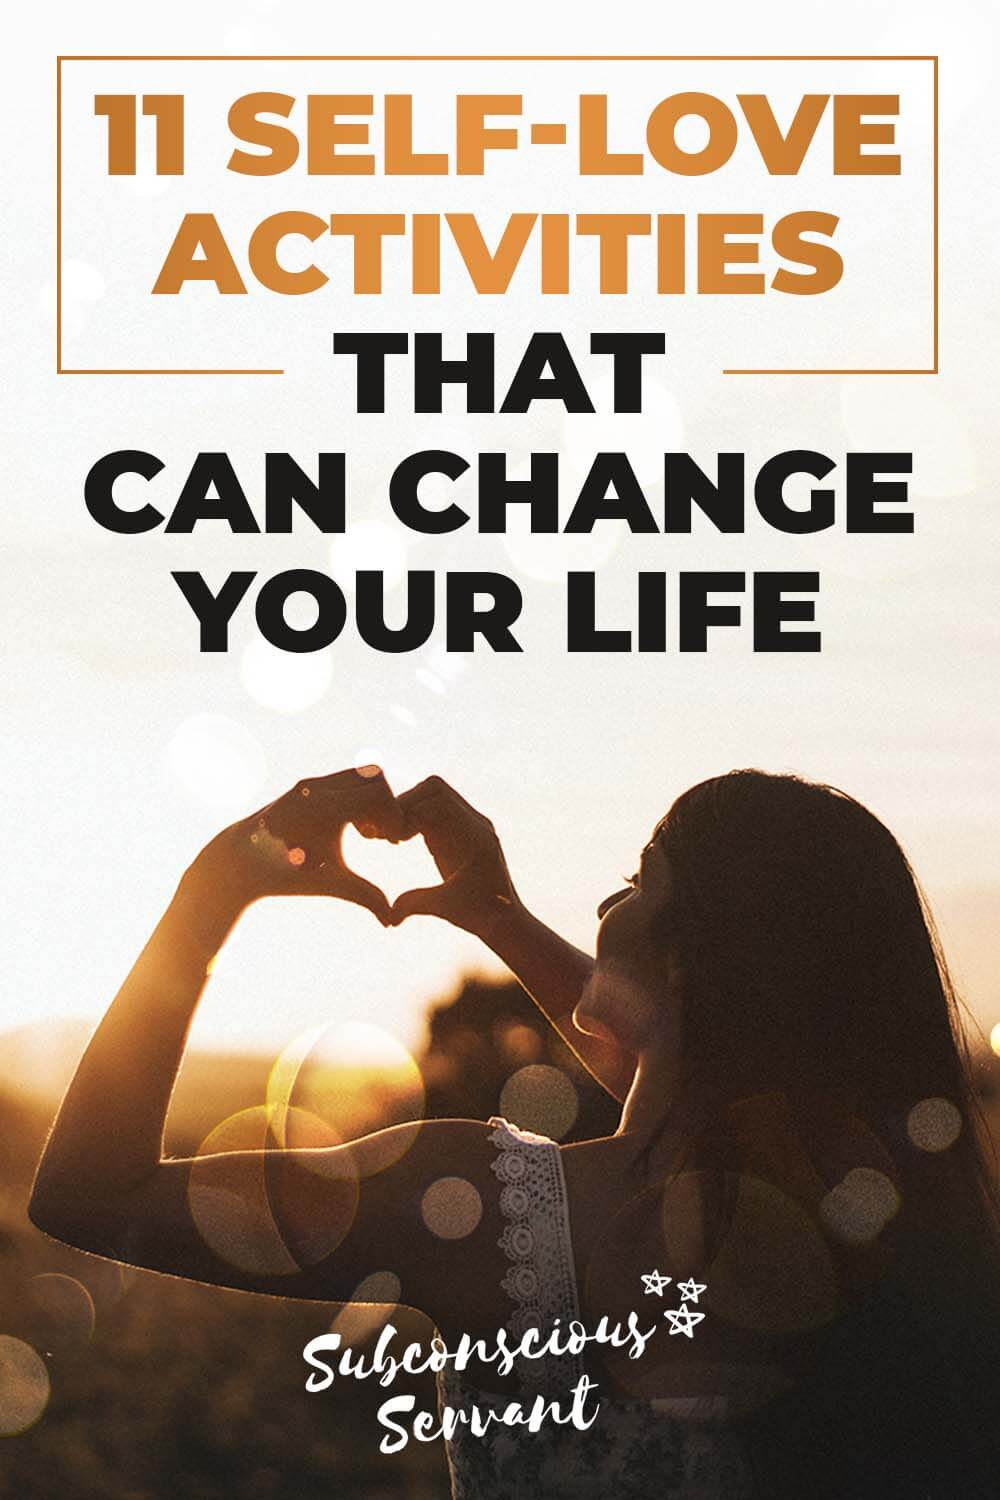 11 Self-Love Activities That Can Change Your Life